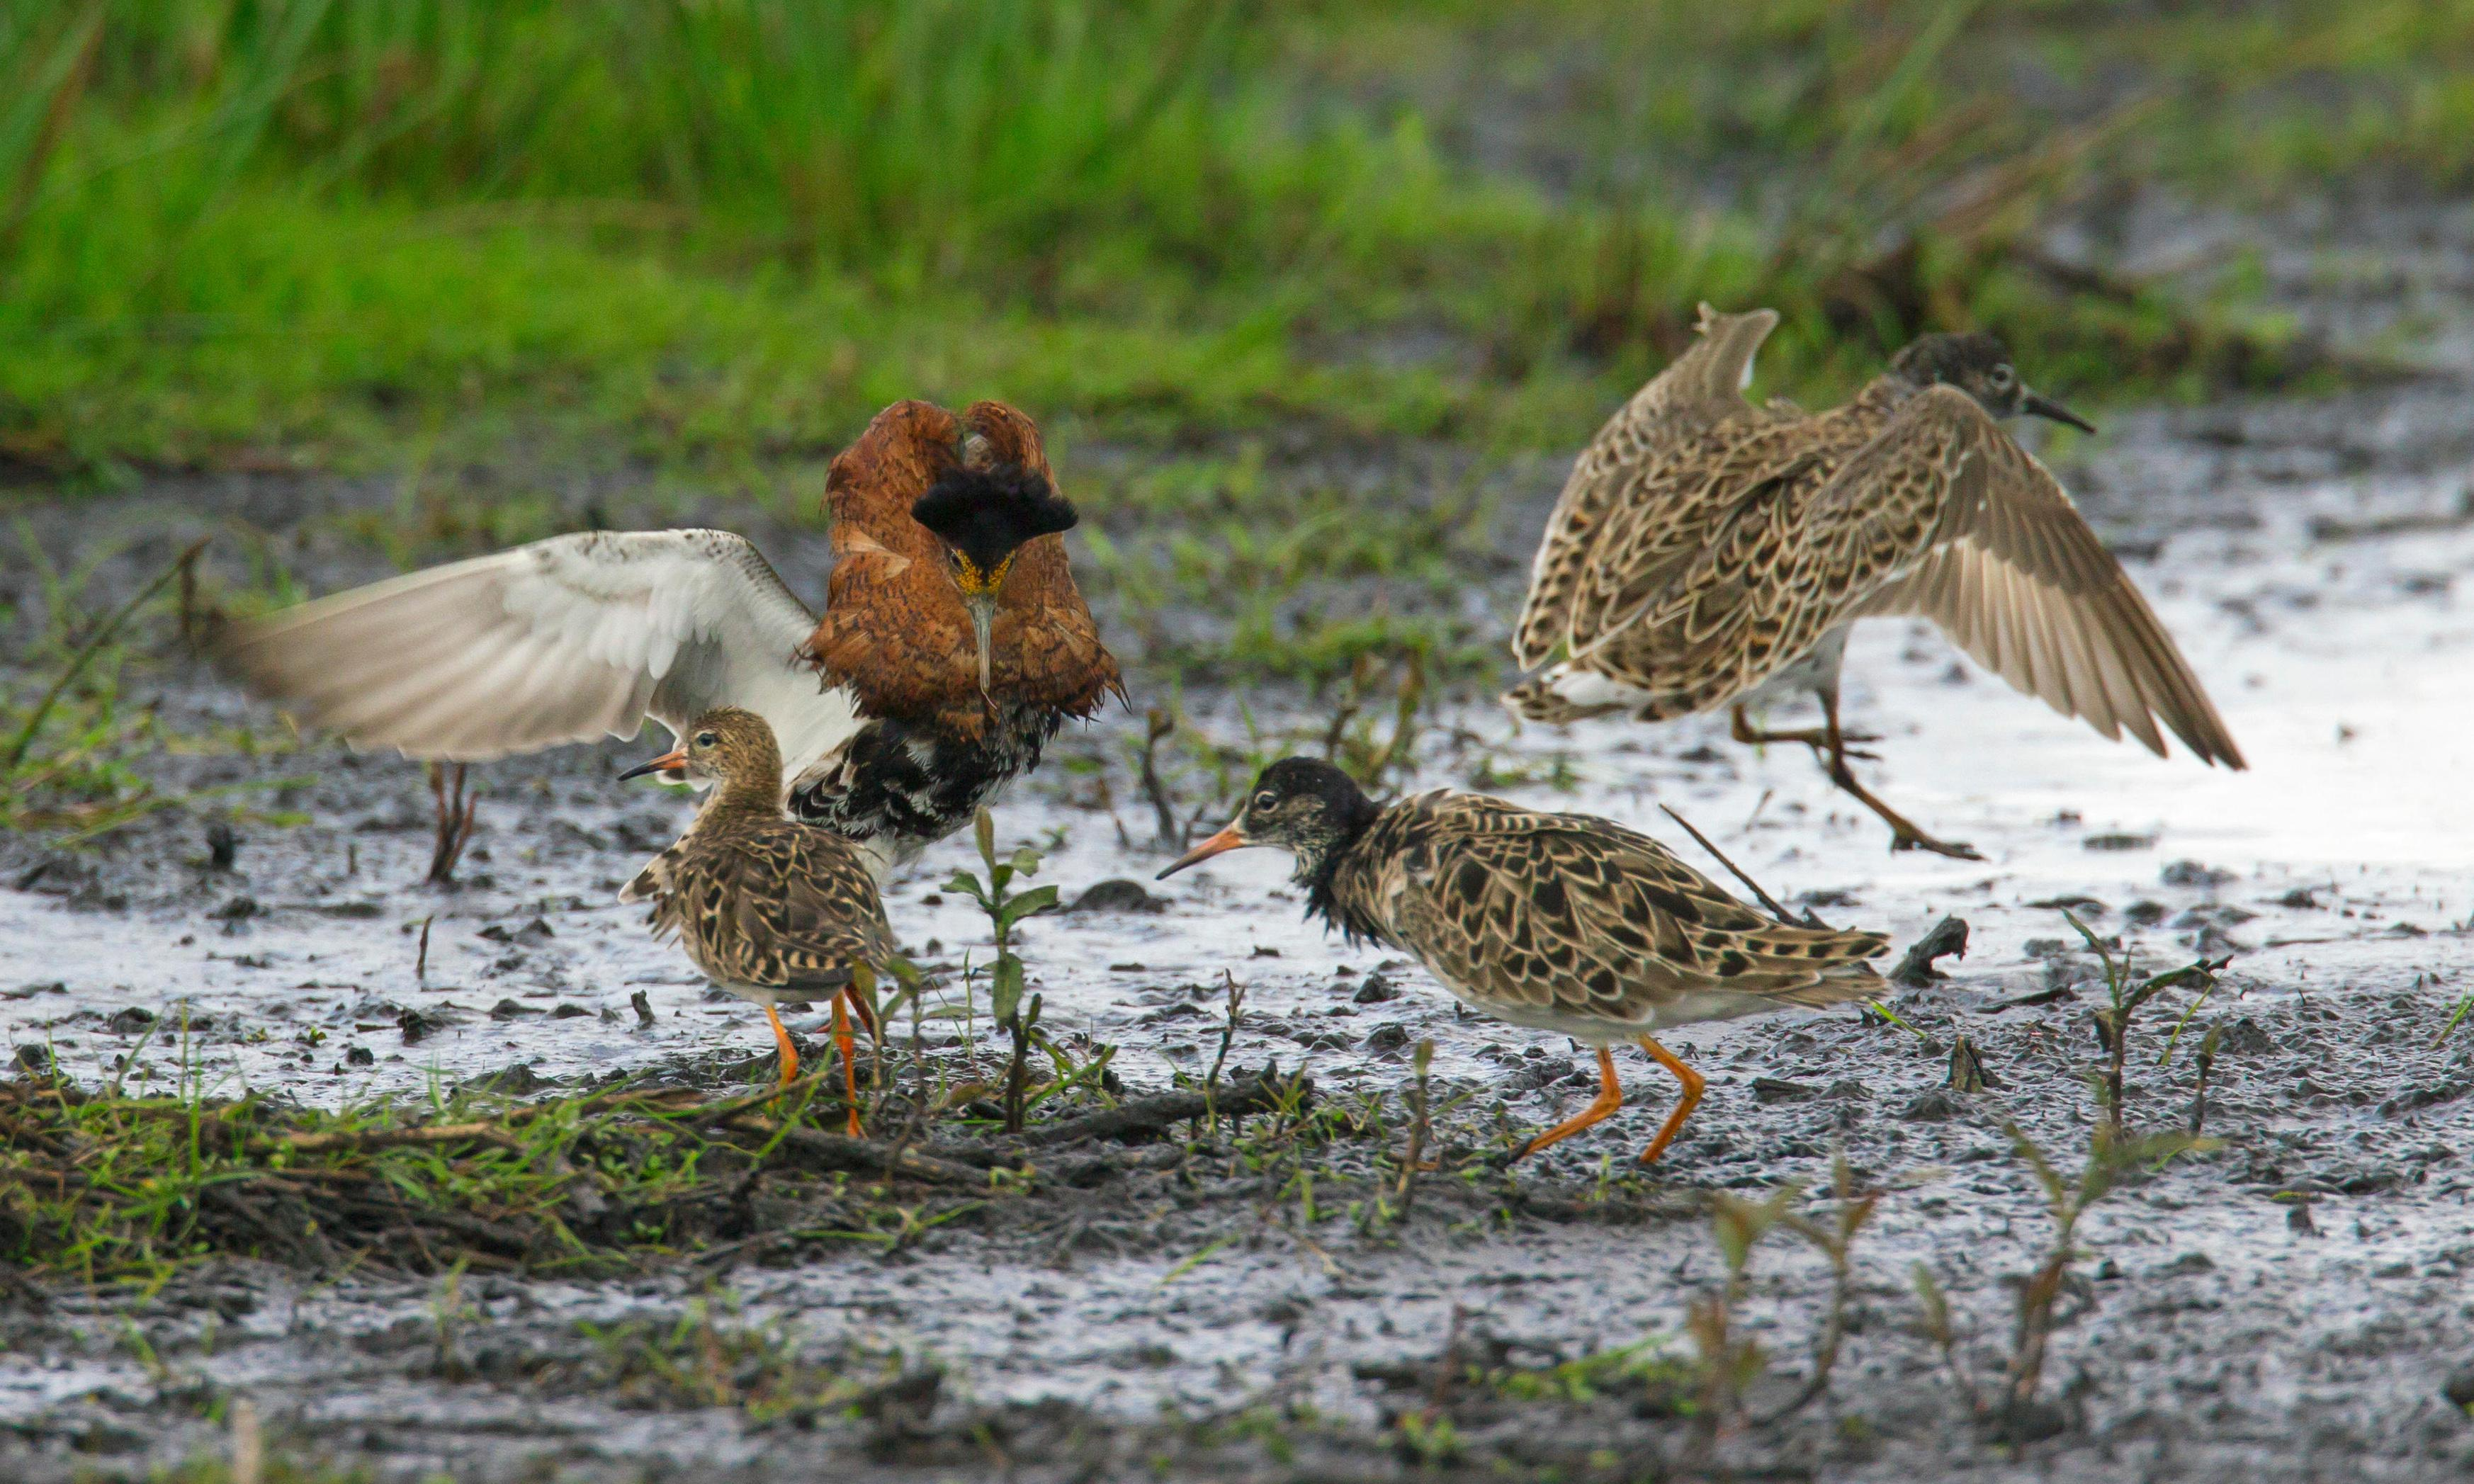 Country diary: a continent of birds descends on this vast expanse of silt